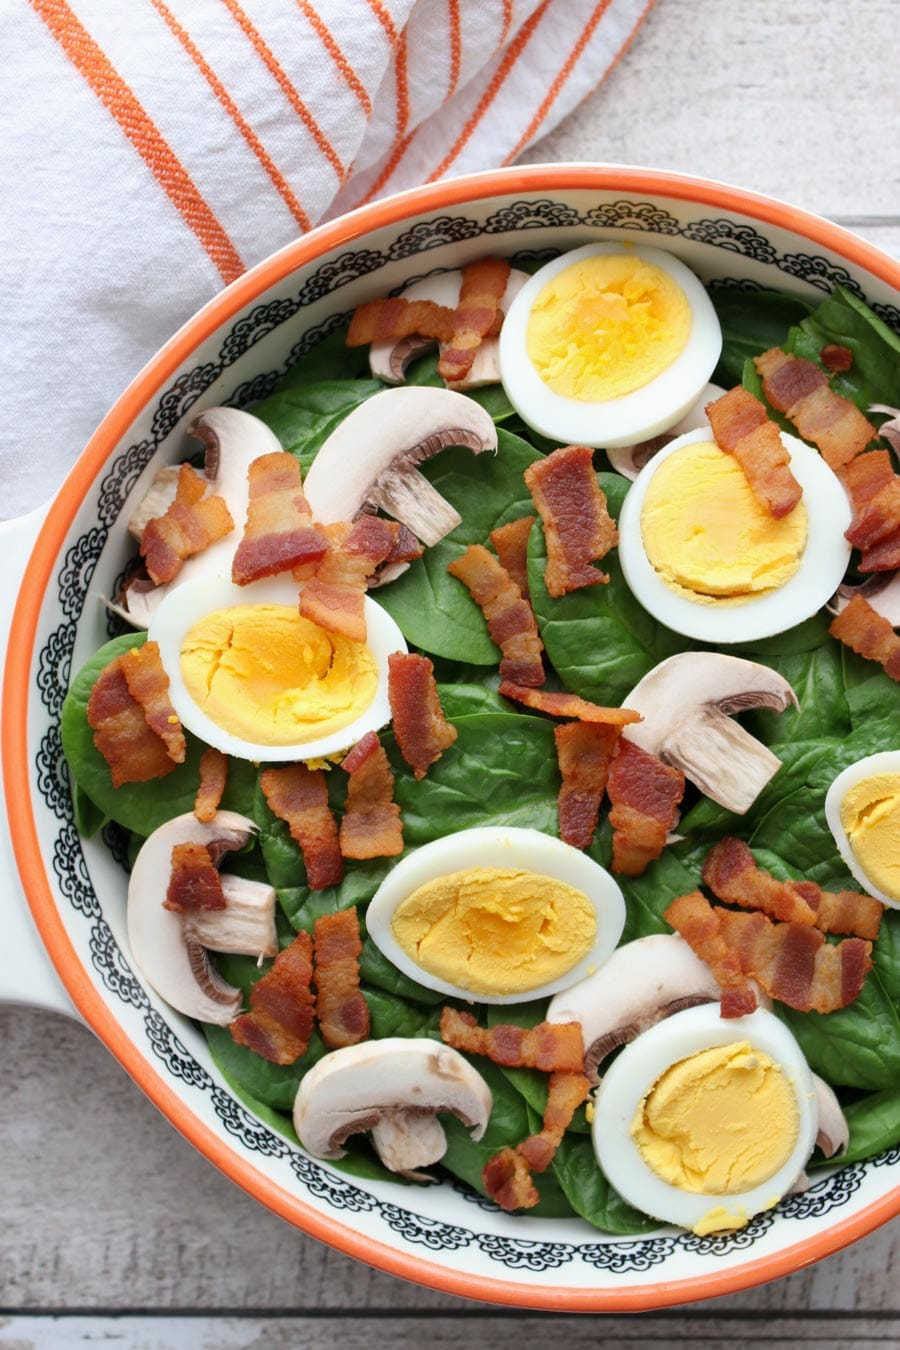 Bowl of spinach with mushrooms, eggs, bacon